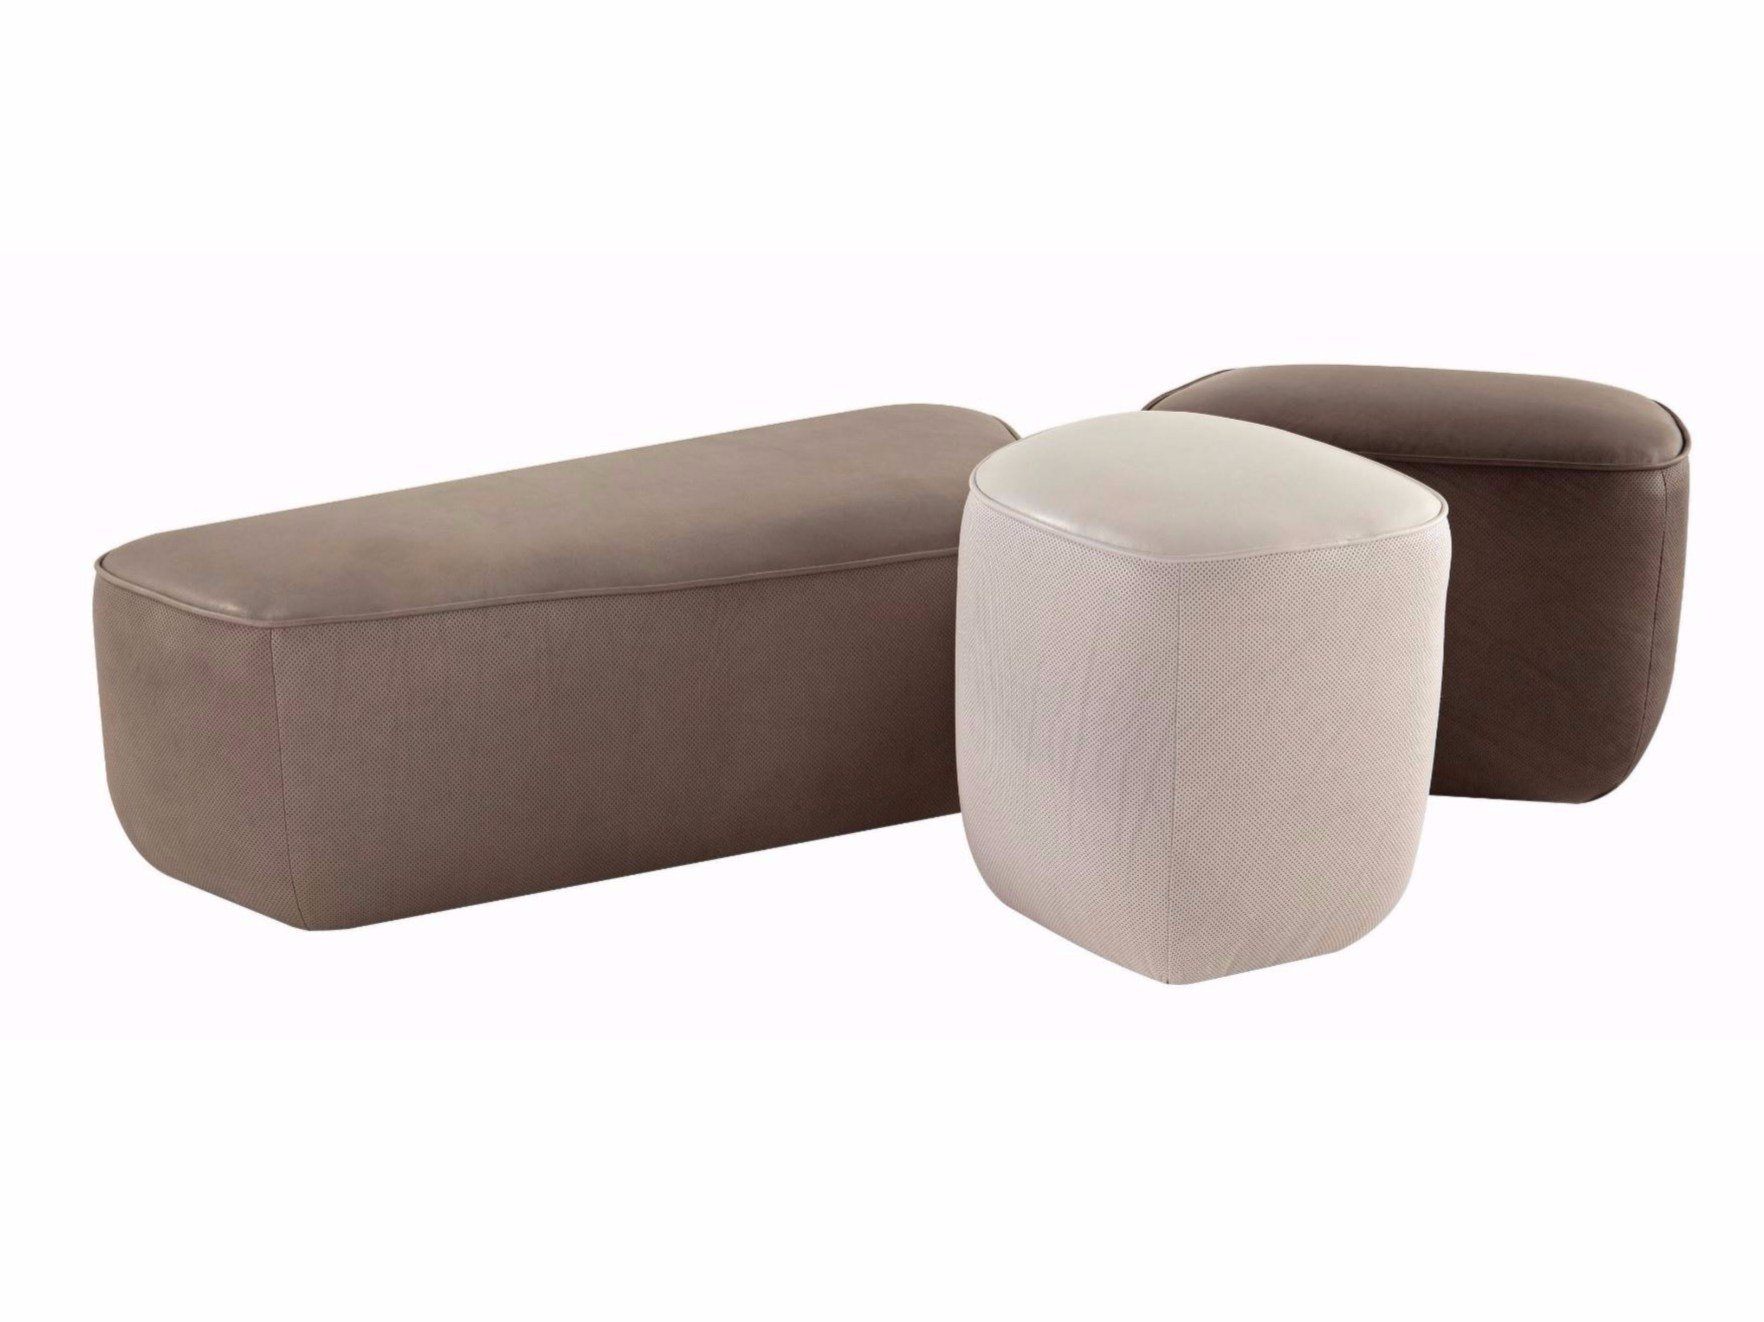 trilogie pouf in cuoio by roche bobois design sacha lakic. Black Bedroom Furniture Sets. Home Design Ideas